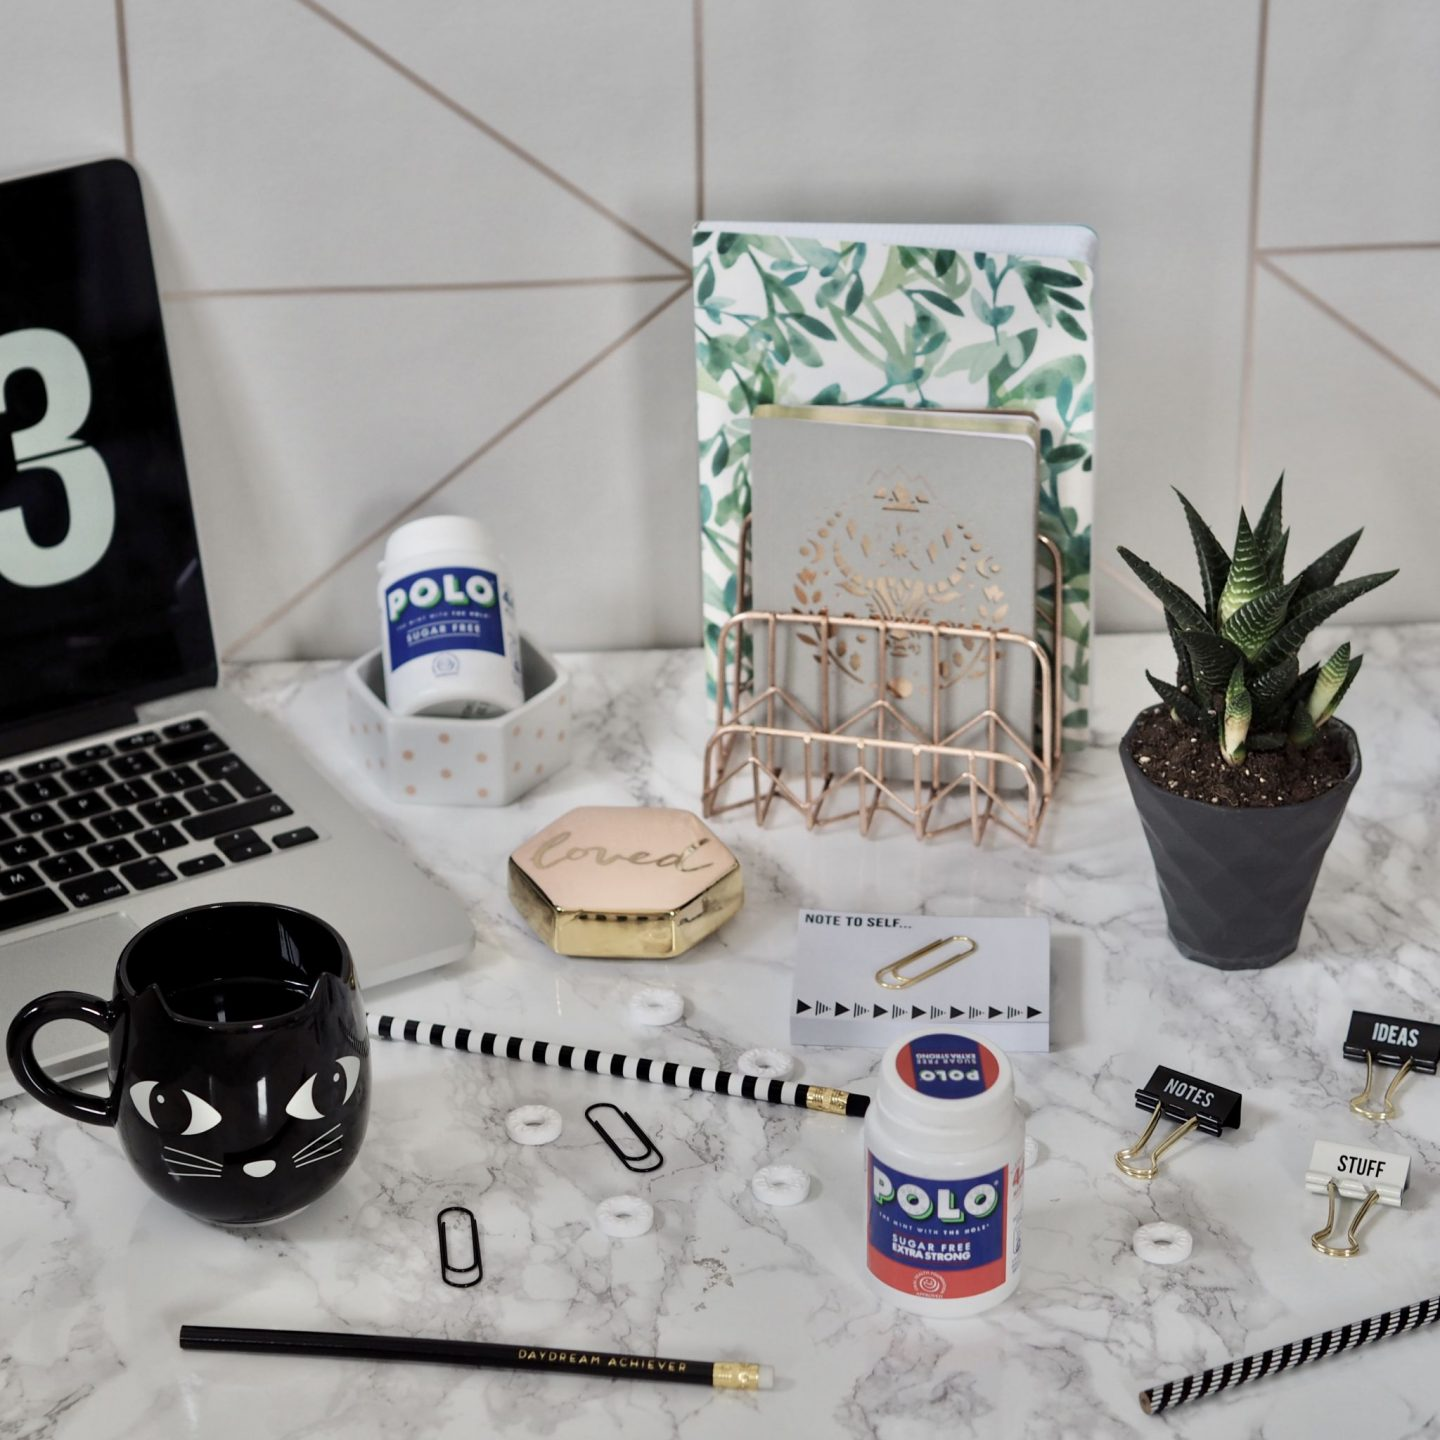 MY DESK ESSENTIALS WITH POLO